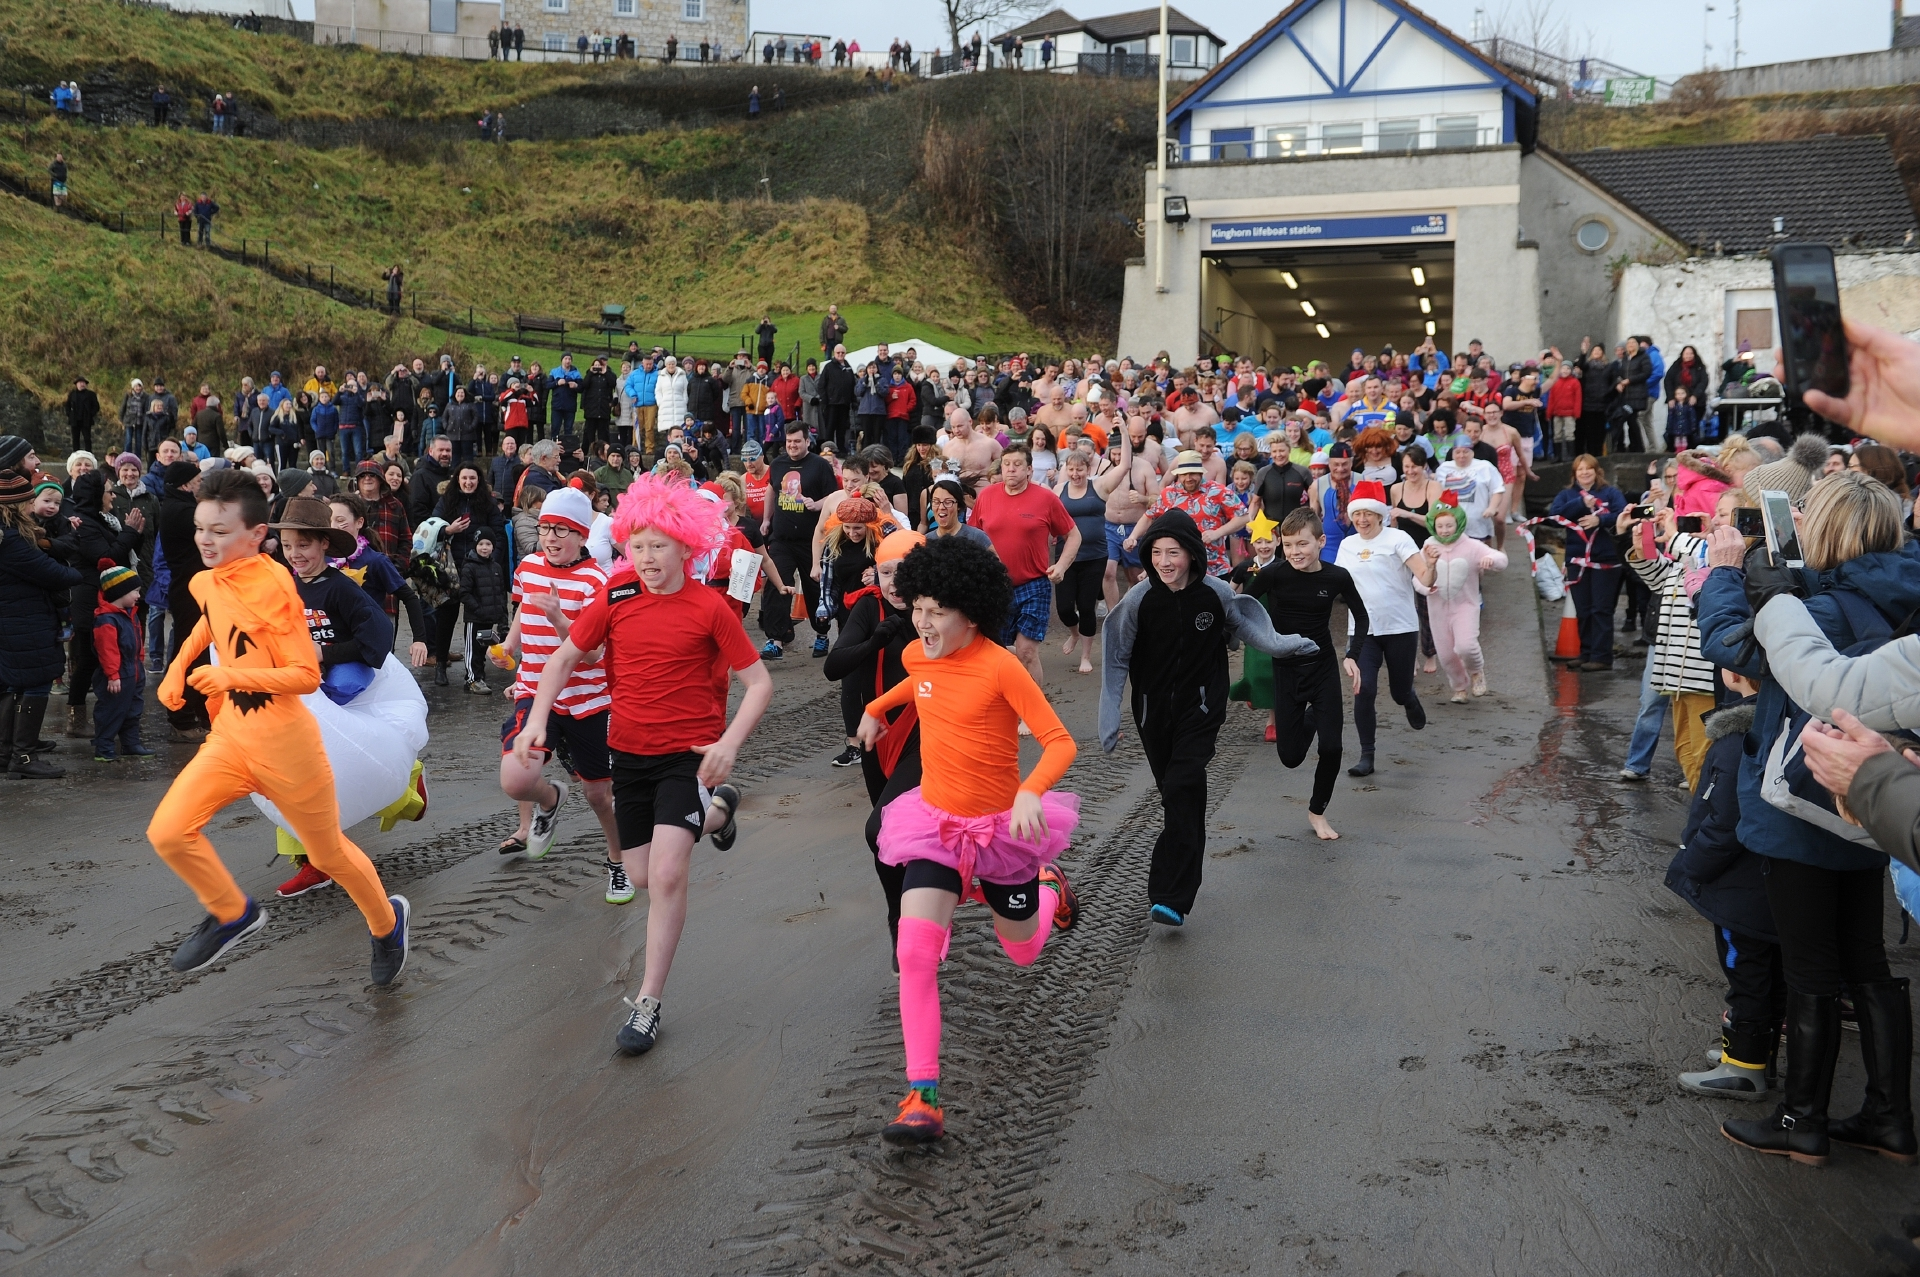 Some of the intrepid bathers run to the water.